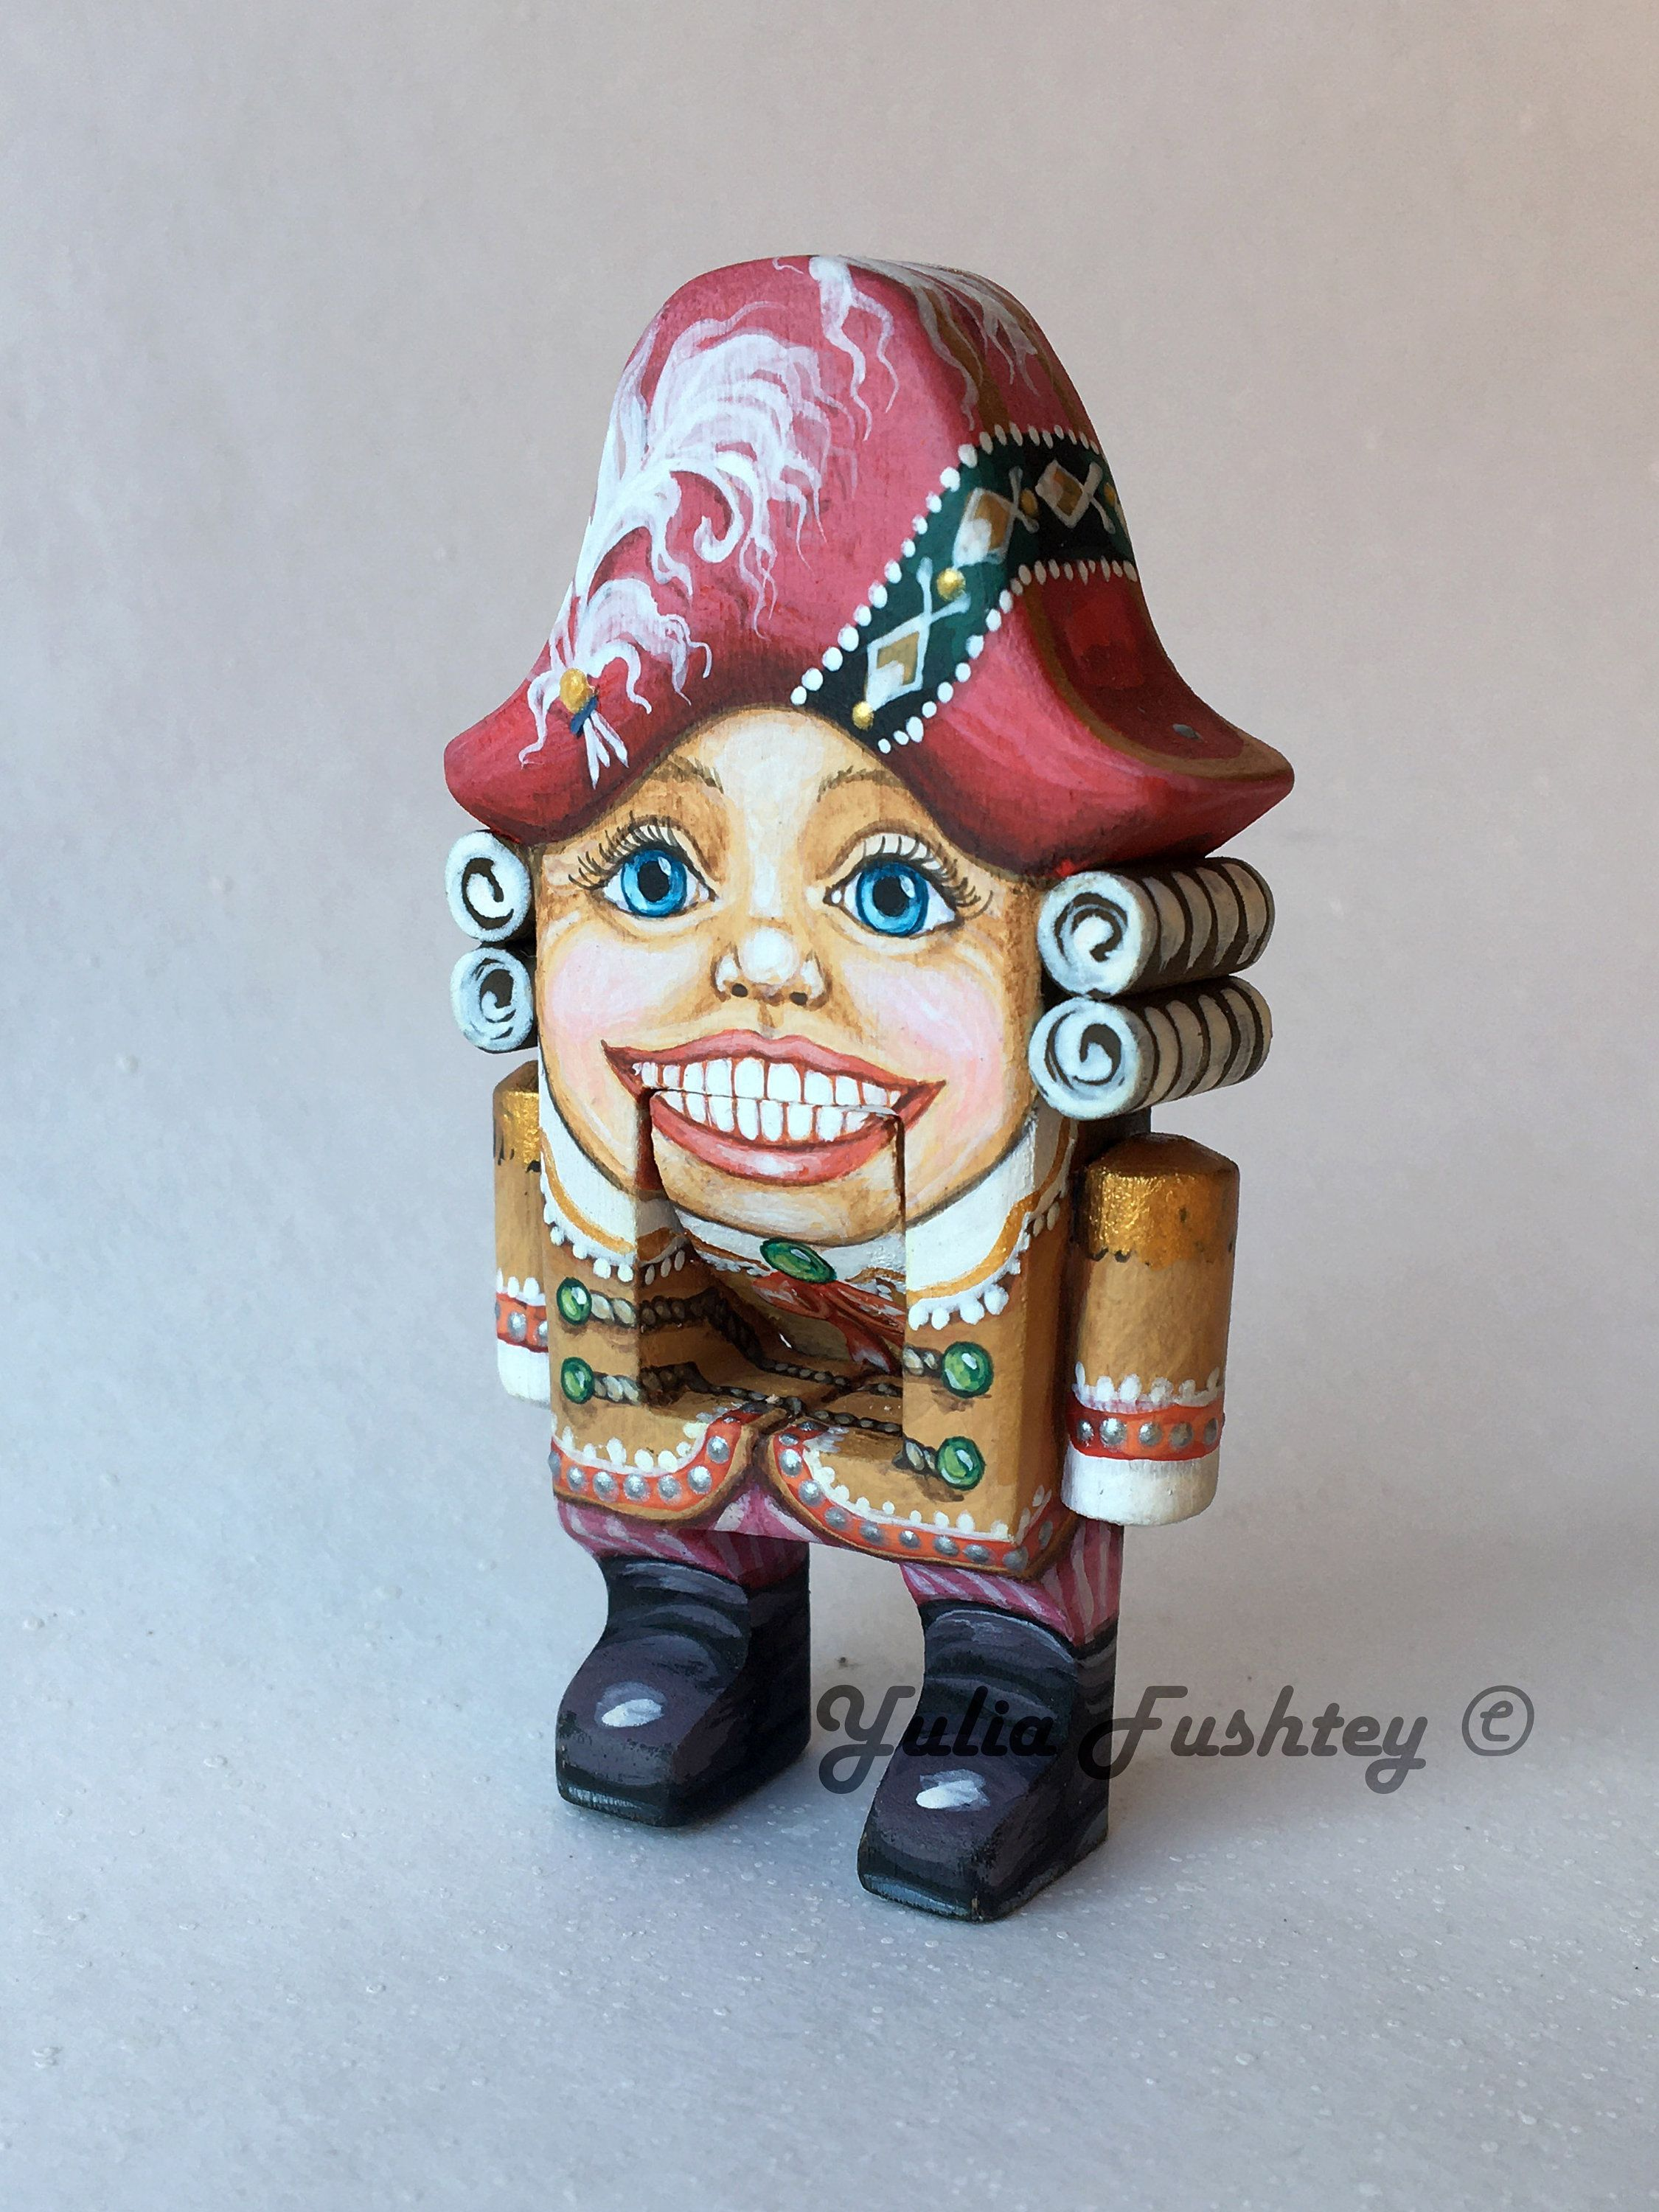 Miniature Vintage Standing Nutcracker Soldier  Wooden Christmas Decor Toy Holiday Gift